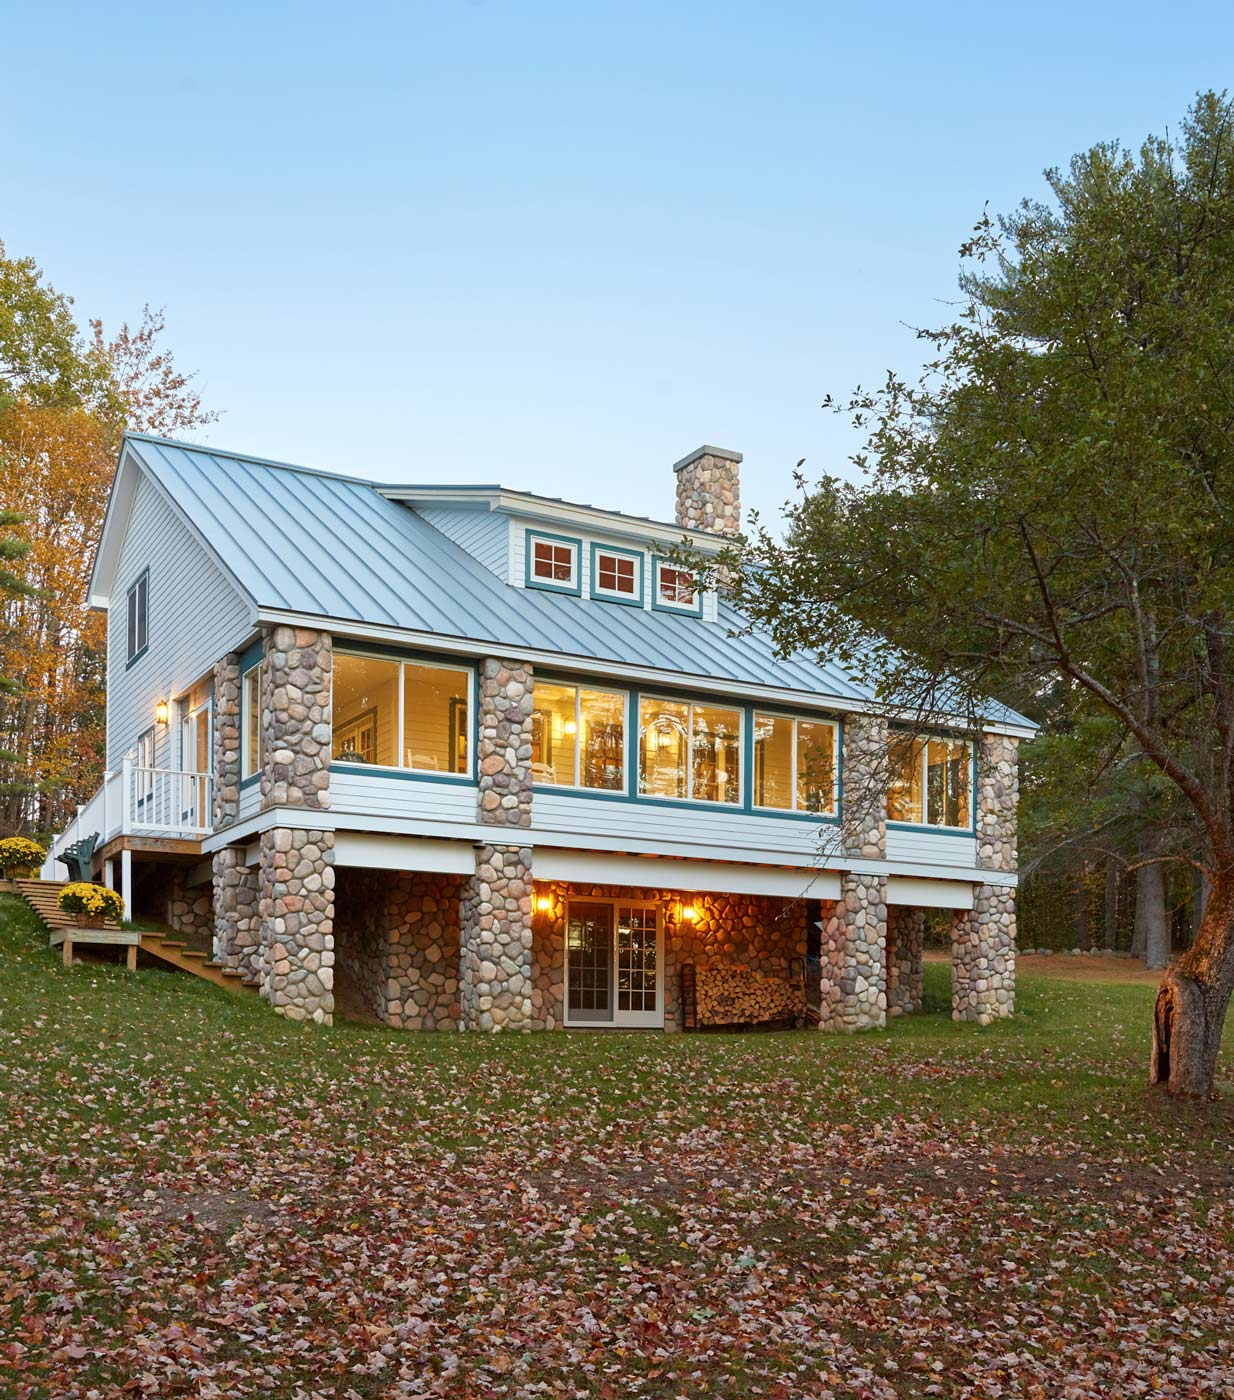 An outdoor shot of the lake house provides a look at its Hardiplank exterior and fieldstone pillars and foundation. The glassed-in porch ensures that the tranquil lake view can be enjoyed in all weather.